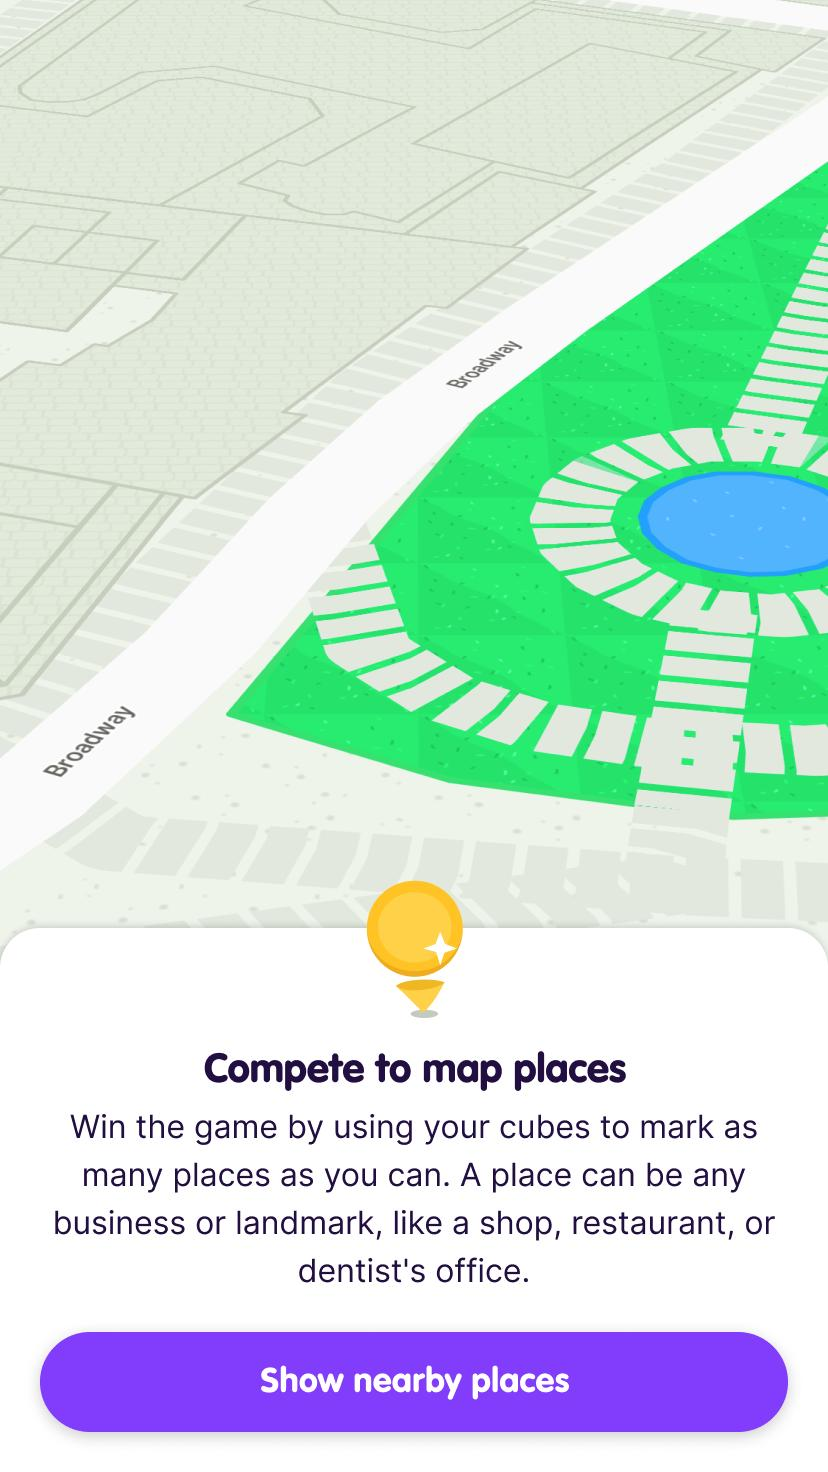 Screenshot from the app intro showing empty map and prompting the user to tap a button to Show nearby places.